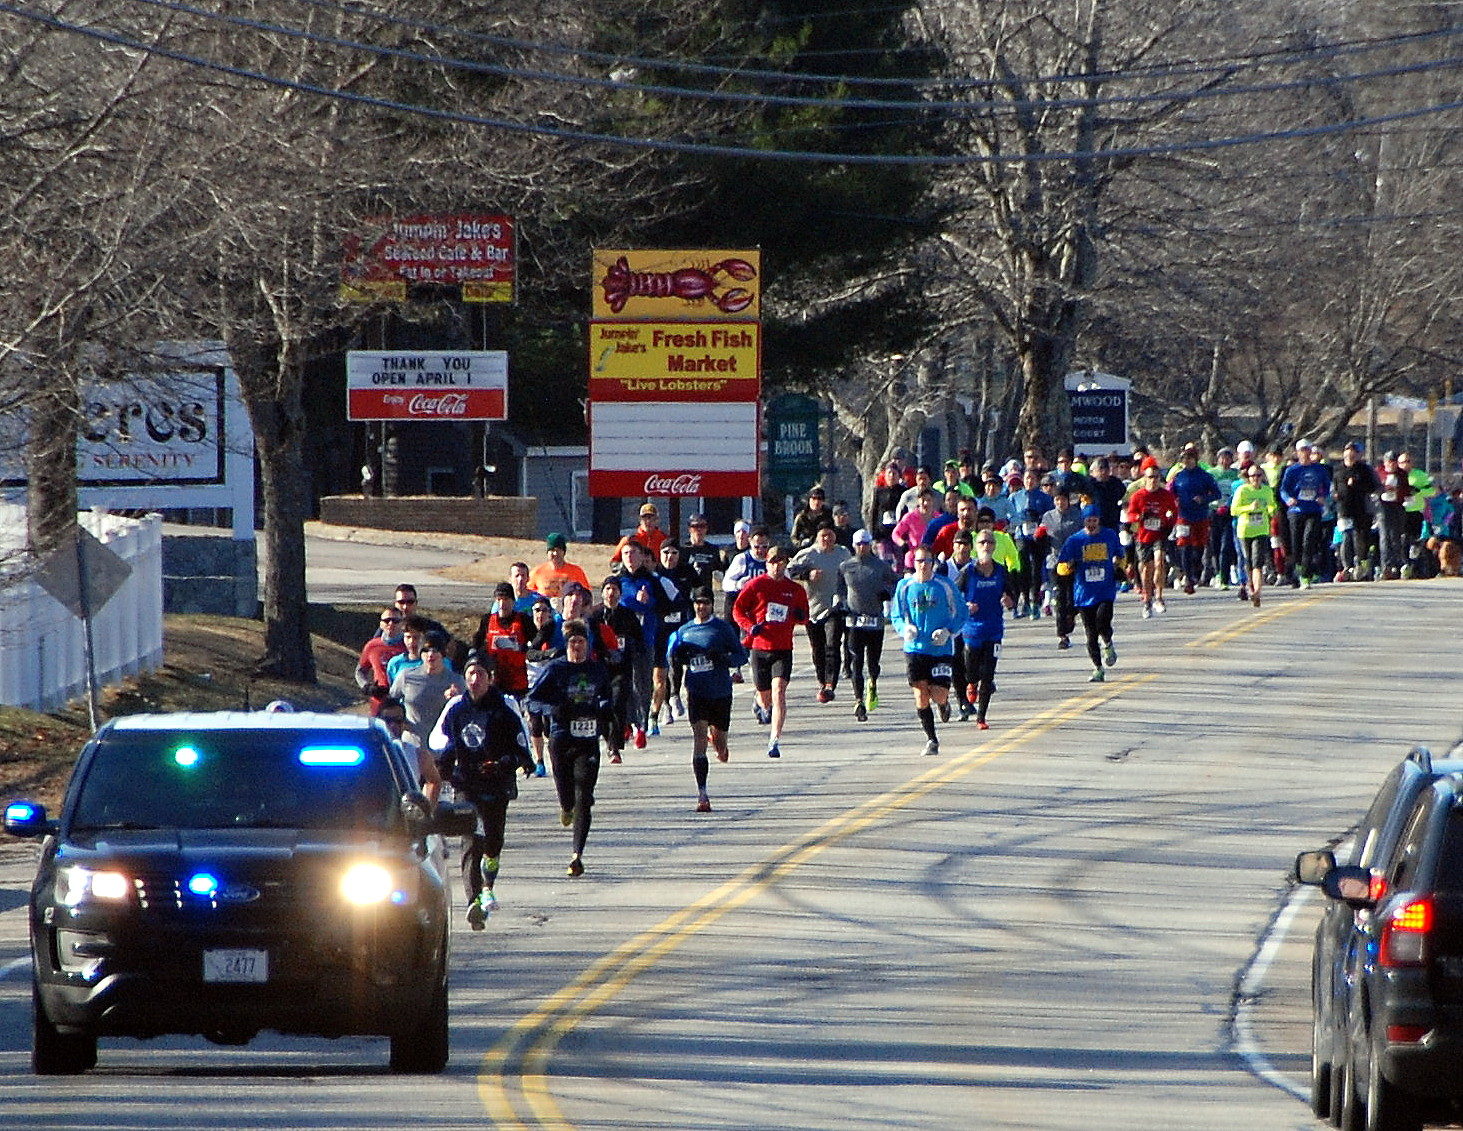 SUBMITTED PHOTO/Courtesy of Gary CurtisRunners race down Saco Avenue in Old Orchard Beach on Sunday morning during Jimmy the Greek's Frozen 4-Miler. The race raised money for camp scholarships through the Old Orchard Beach Recreation Department.